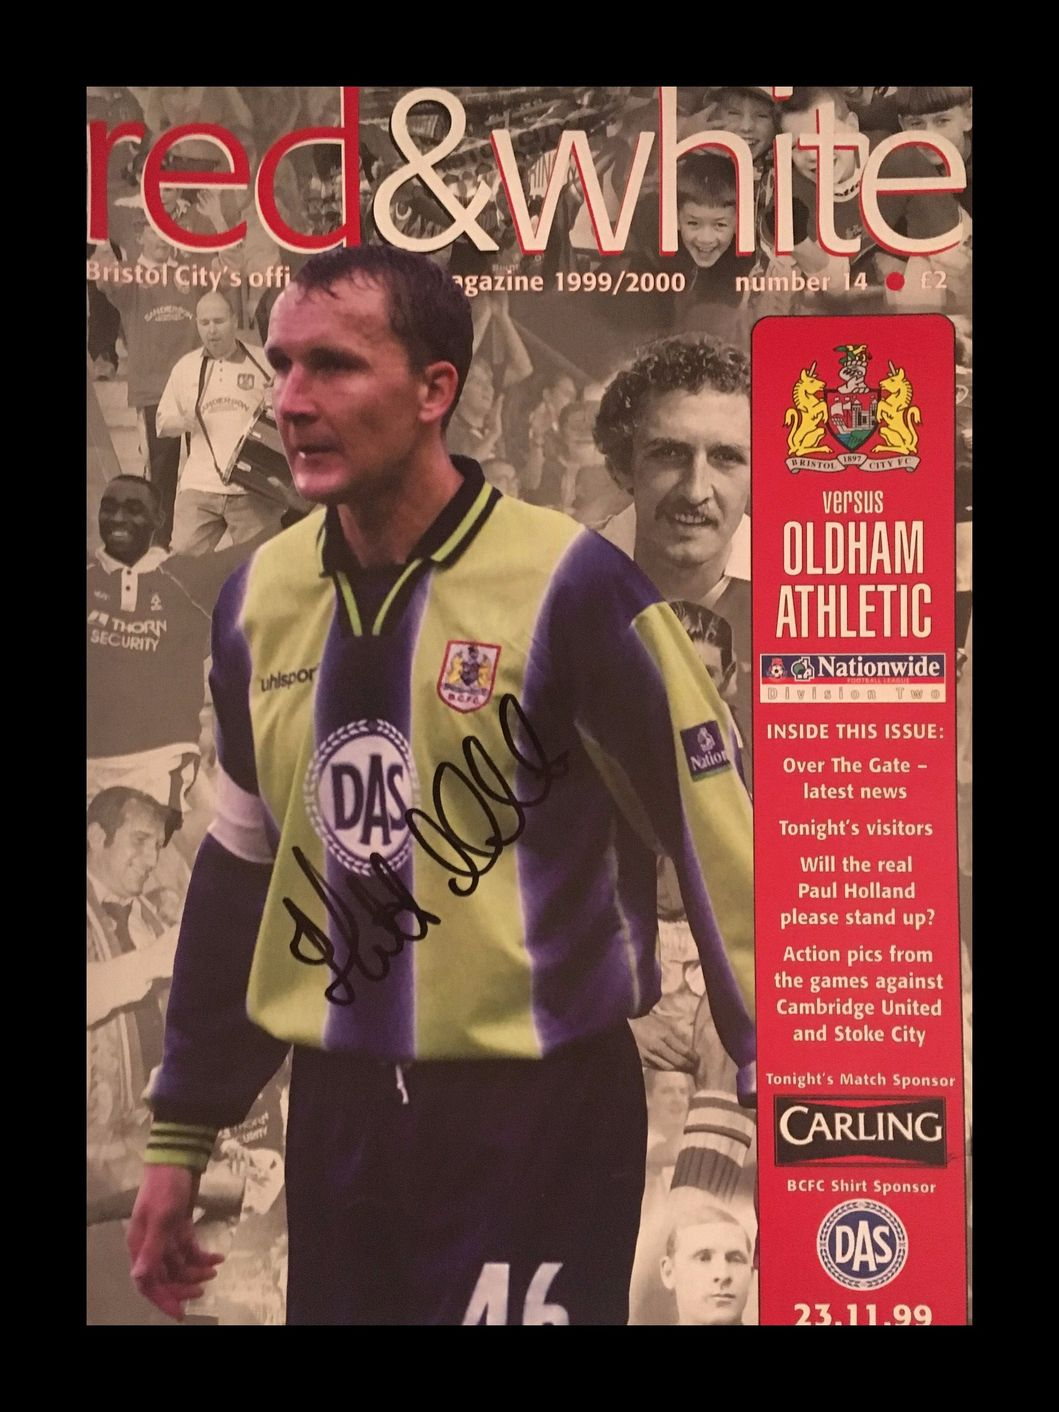 Bristol City v Oldham Athletic 23-11-1999 Programme